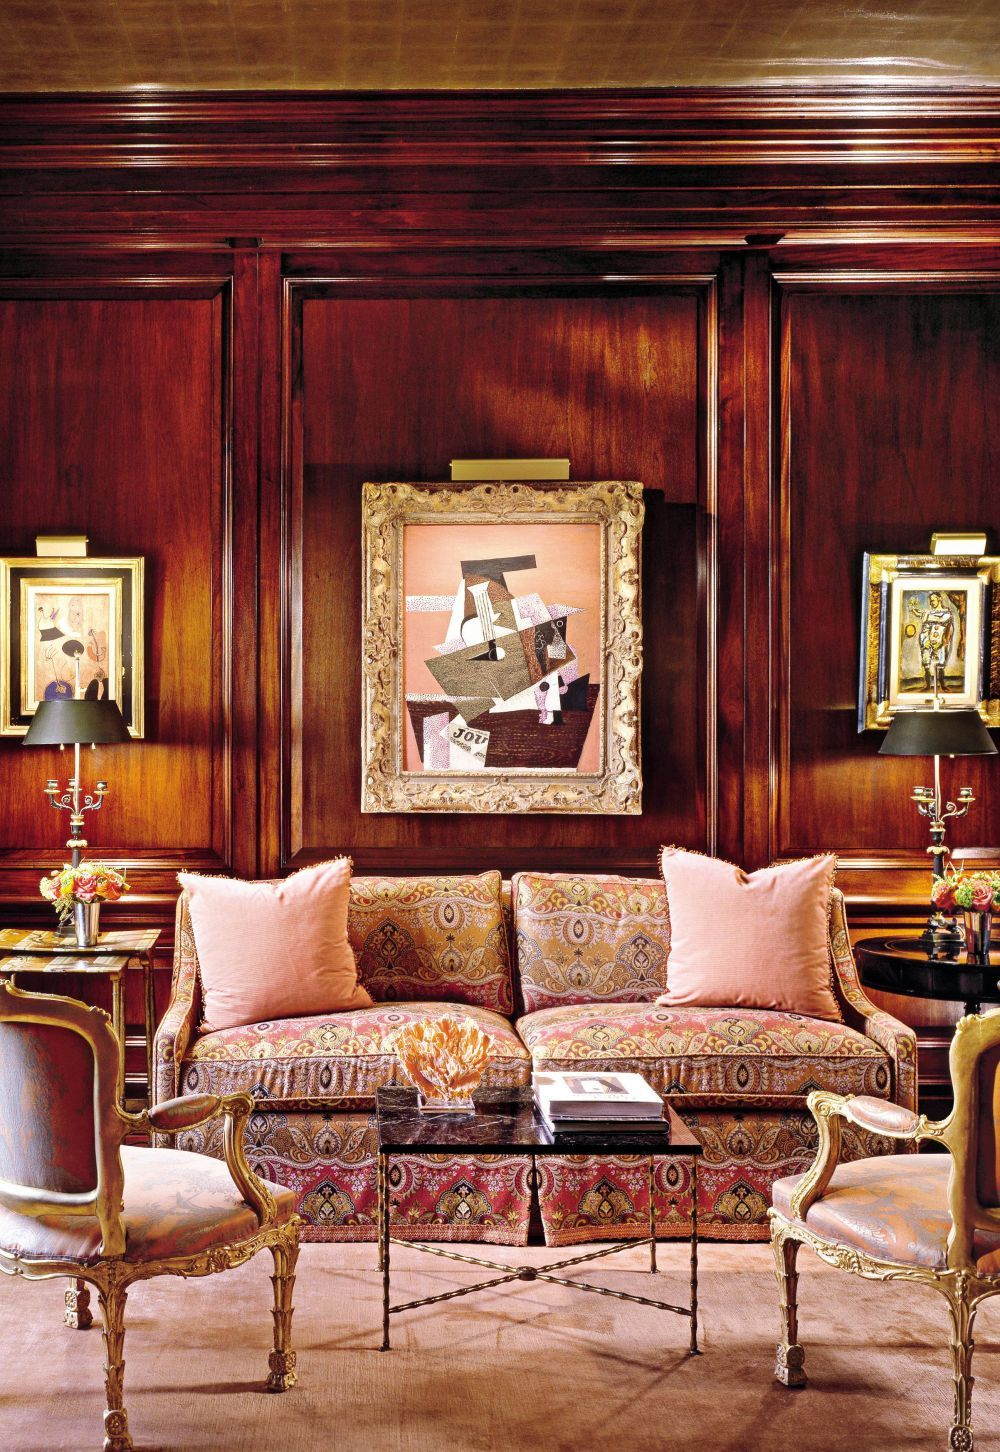 Traditional Office/Library by Hein + Cozzi /  In a Manhattan apartment, works by Joan Miró at left, and Georges Rouault flank Picasso's Guitare et Journal, which inspired the library's persimmon and peach fabrics and the custom-made silk carpet. The sofa is by Avery Boardman. /      Designer: Hein + Cozzi     Photographer: Durston Saylor     Homeowner: Loida Nicolas Lewis     Article: Vibrant Vision, January 2010     Location: New York, New York